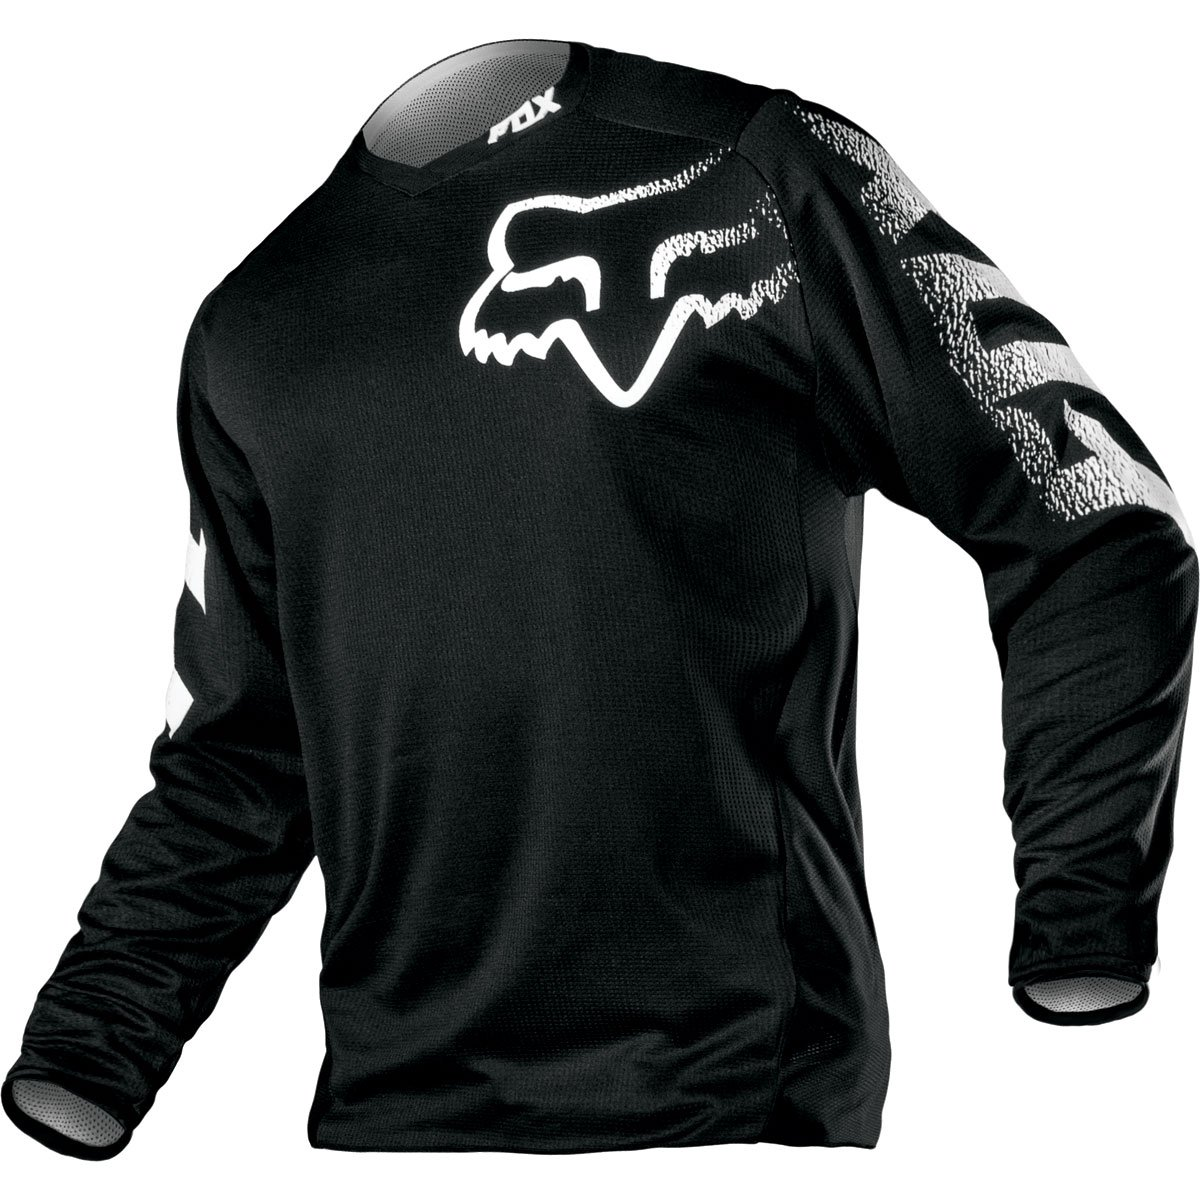 Fox Racing Blackout Motocross Offraod Jersey- Large